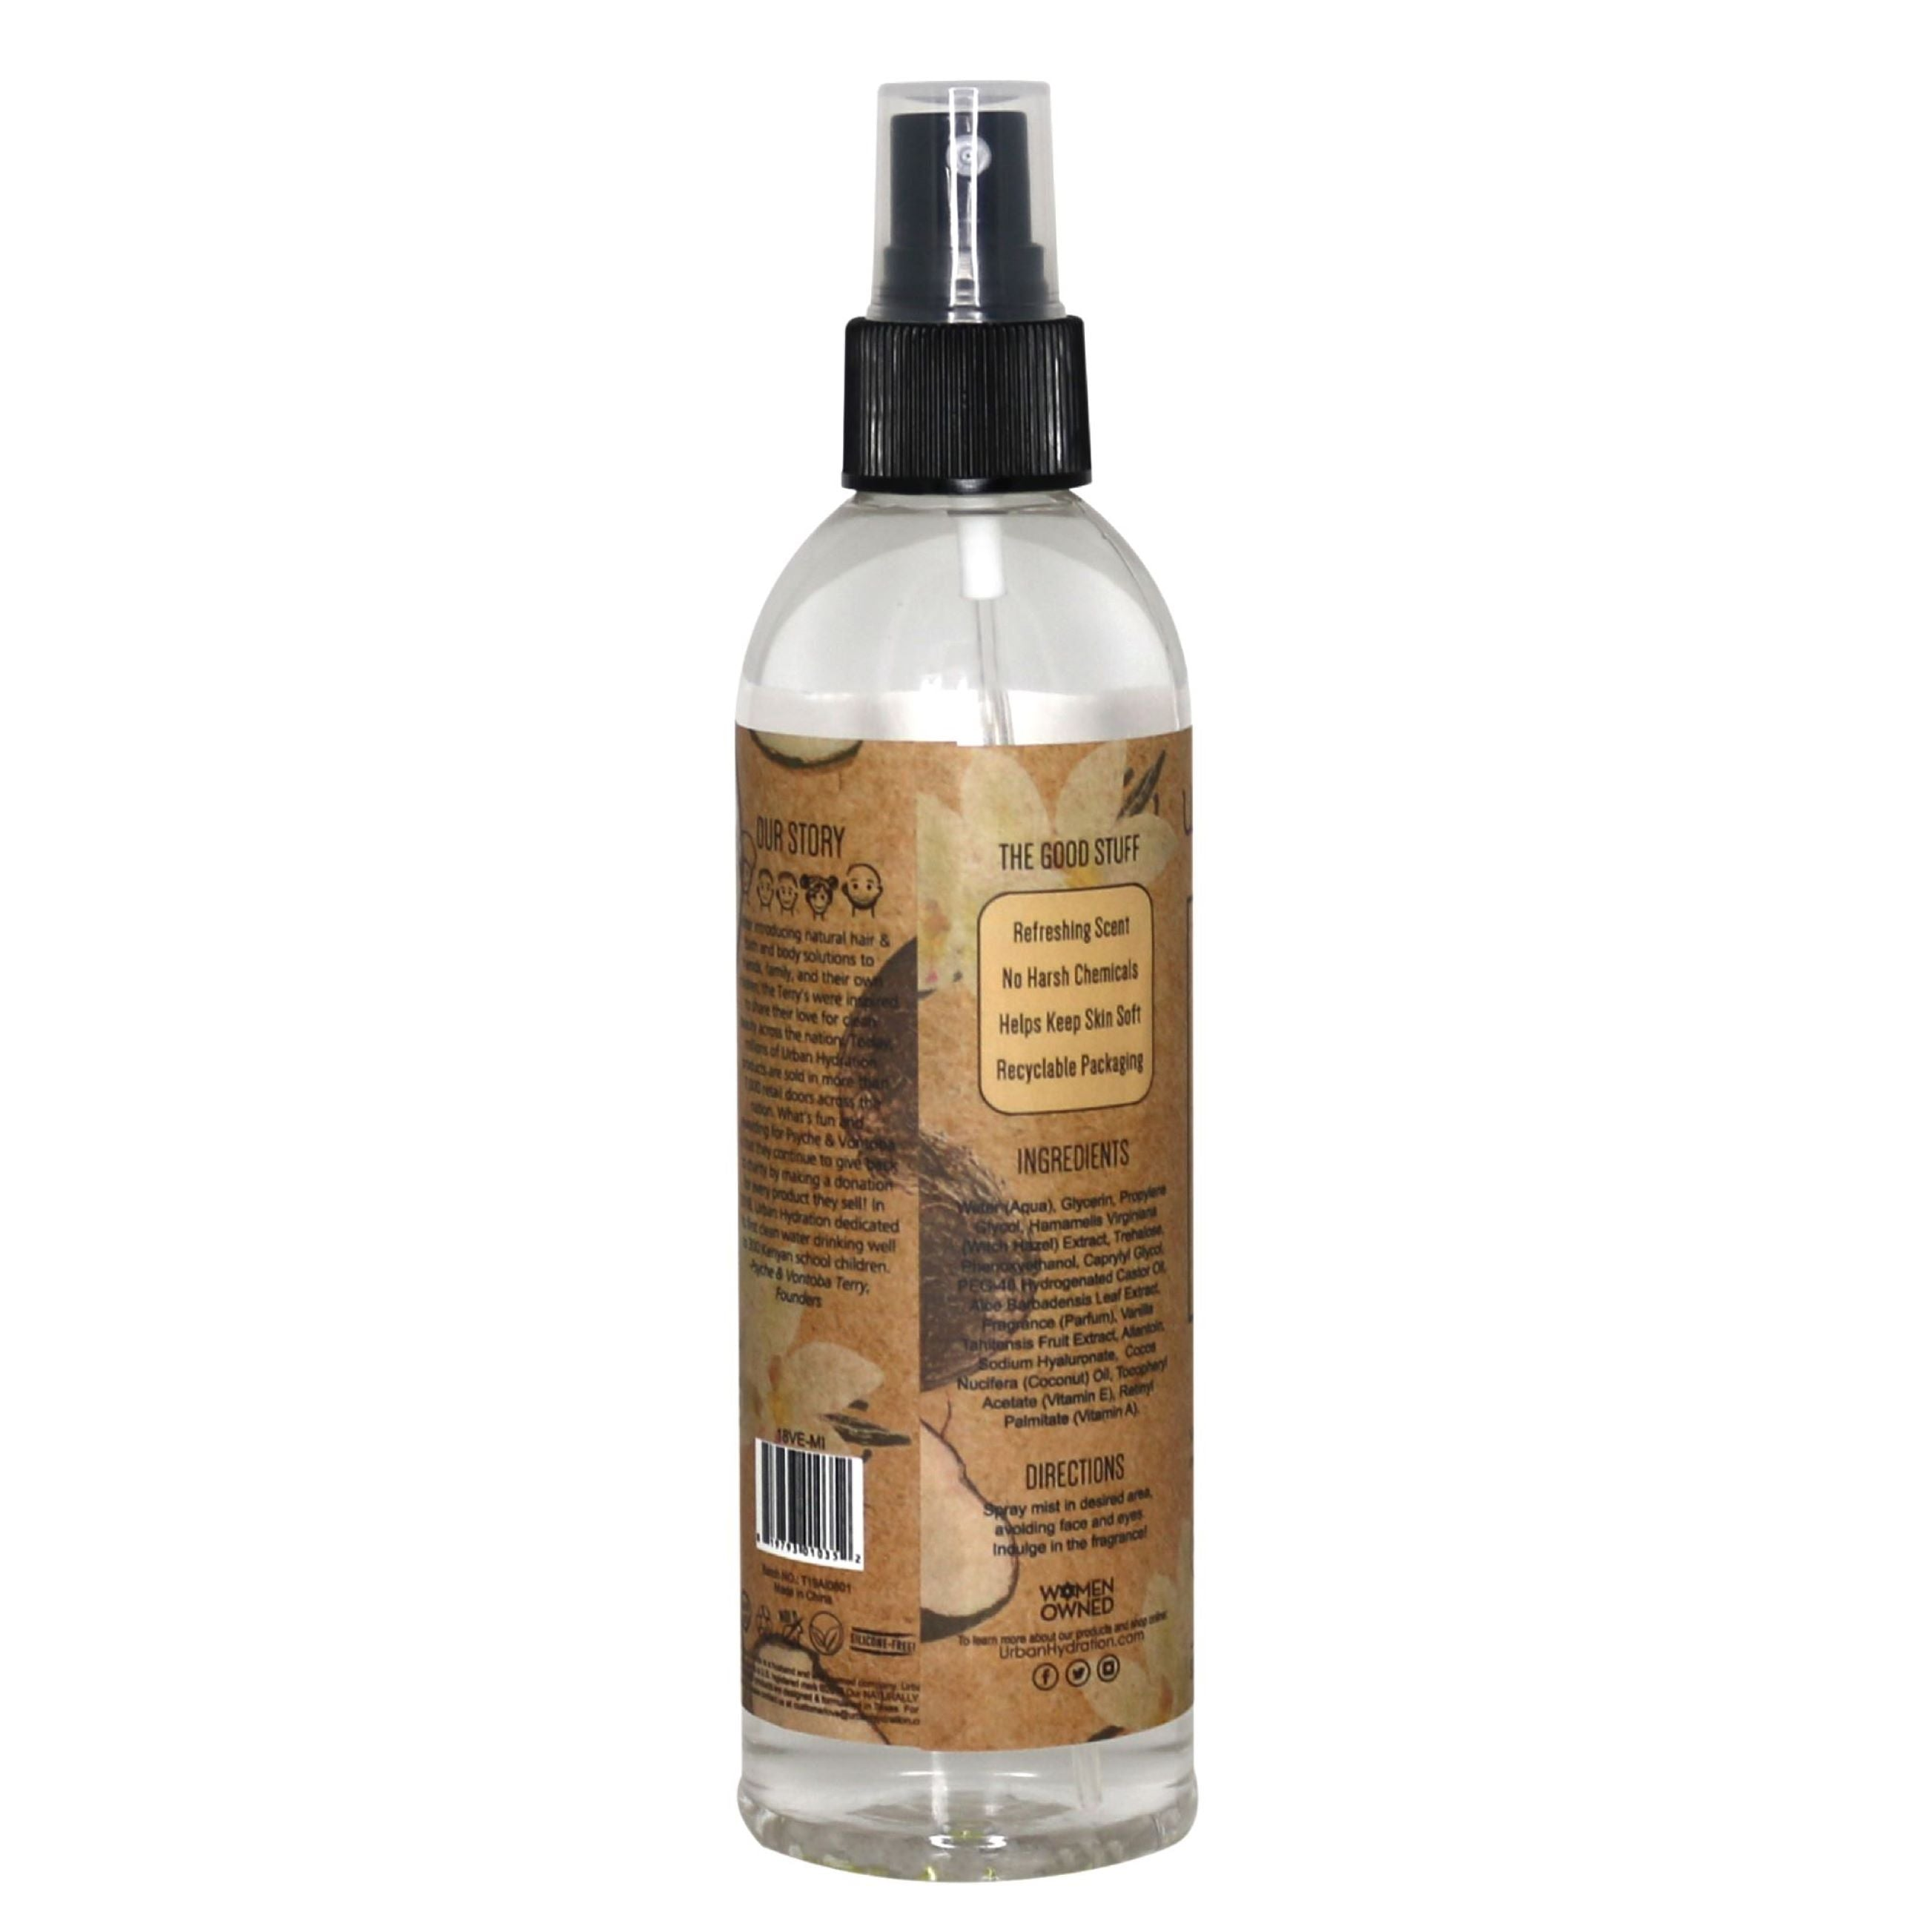 Vanilla Everything Mist